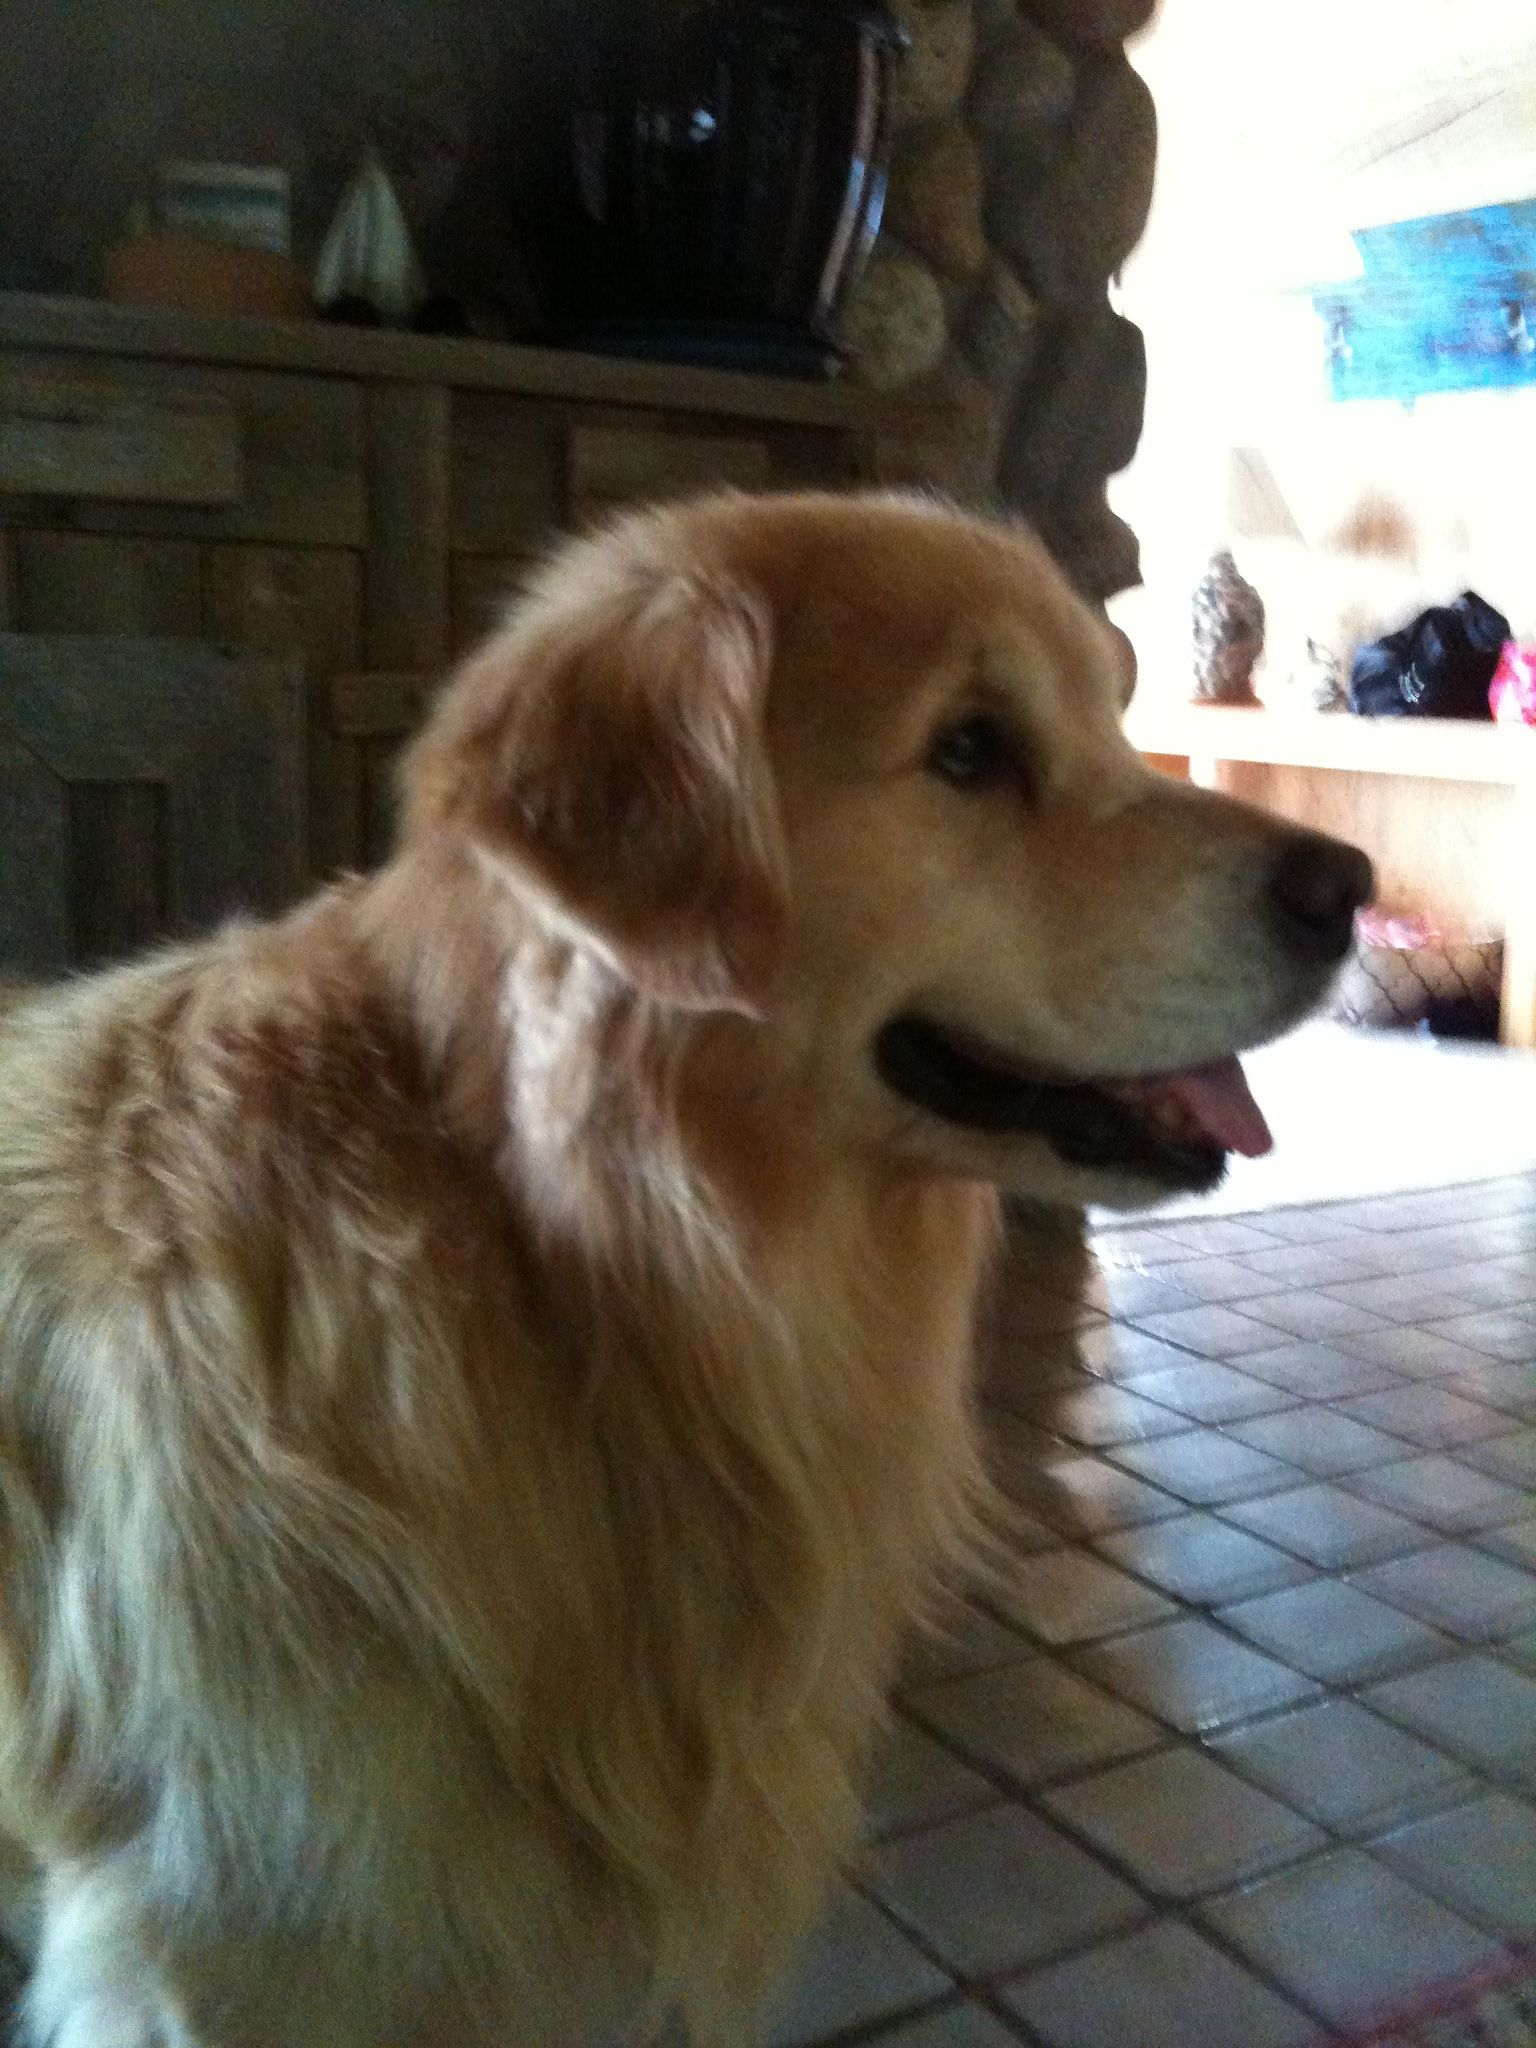 So cute! I love golden retrievers! They look like lions and they're so nice!